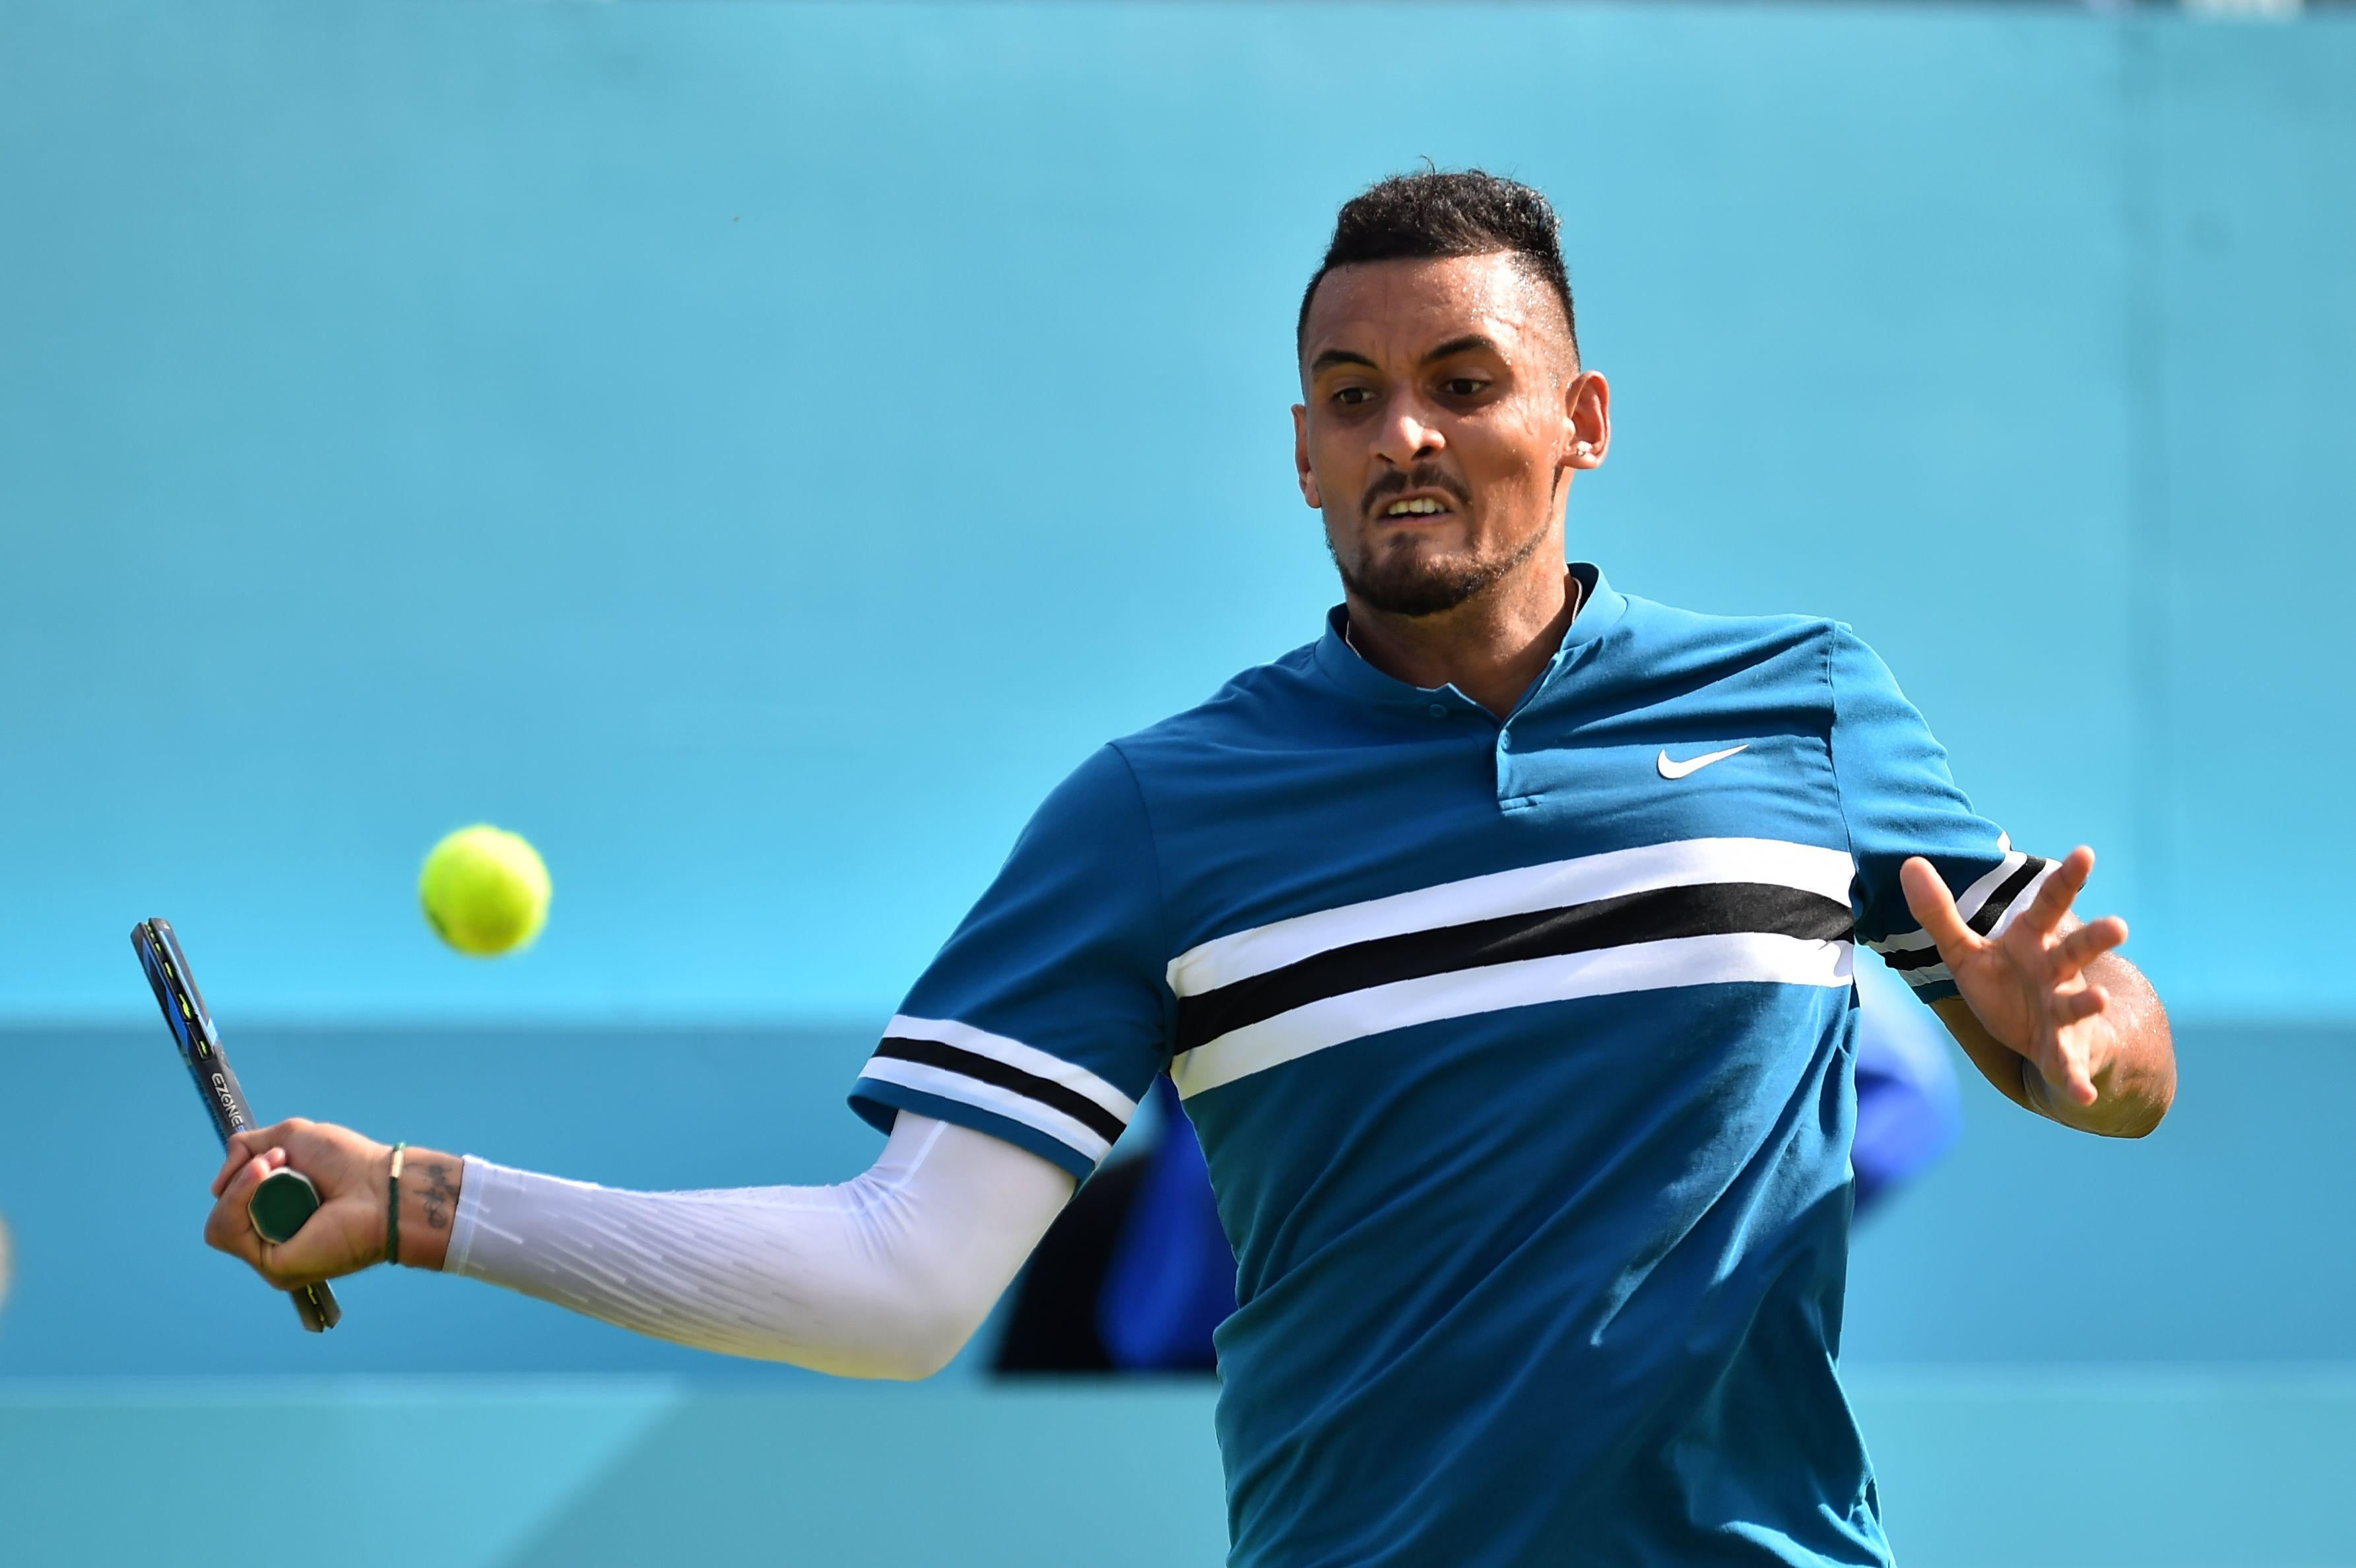 Nick Kyrgios came through in three sets at Queen's